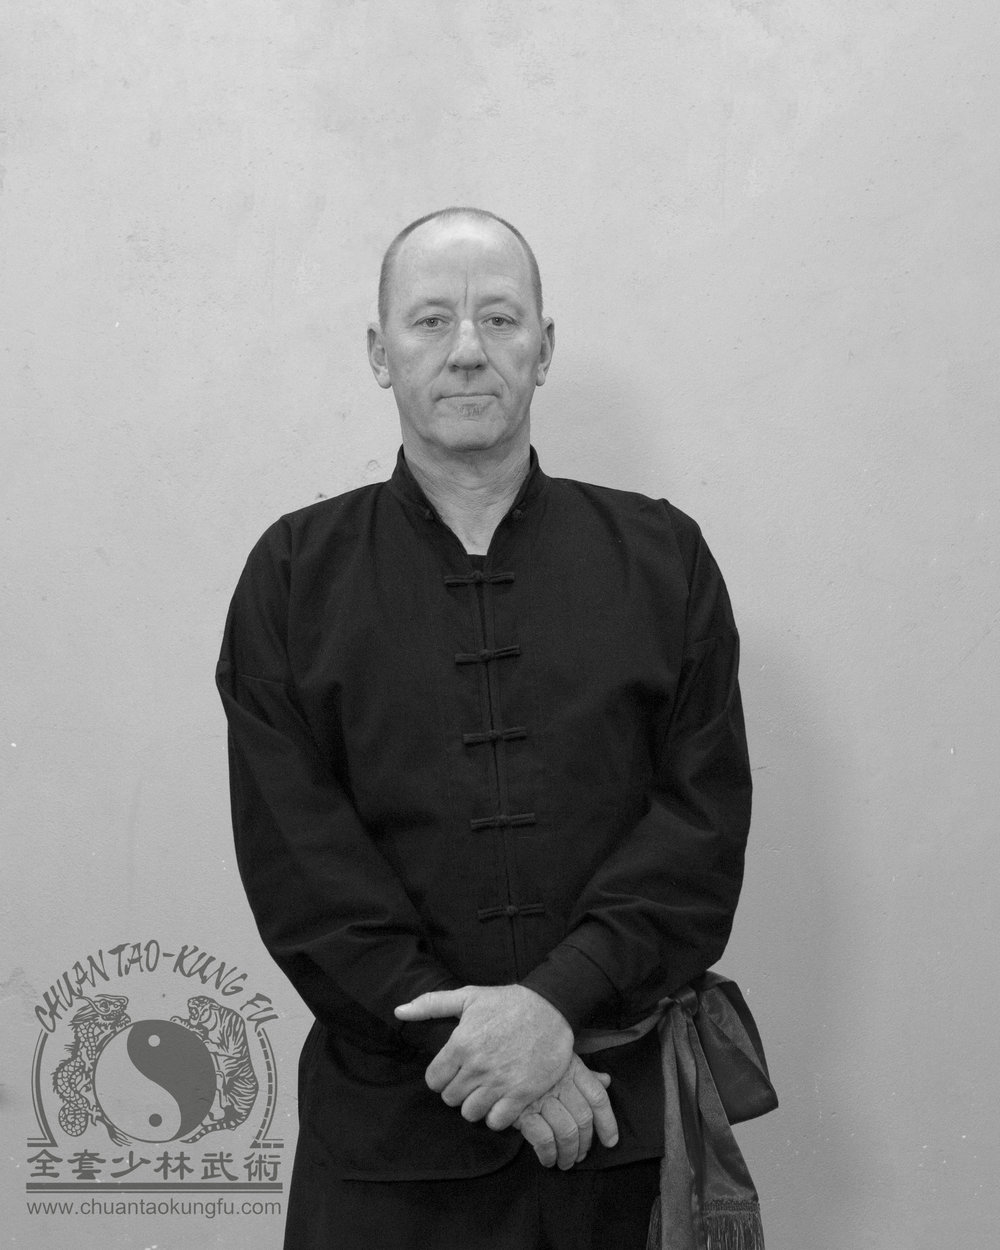 - Mr. Dybvad has been training at Chuan Tao Kung-Fu for over 20 years, he started at the age of 32 and had never trained before. The art and the school quickly became a major part of his life. Although he will always consider himself to be a student he began teaching 5 years ago.